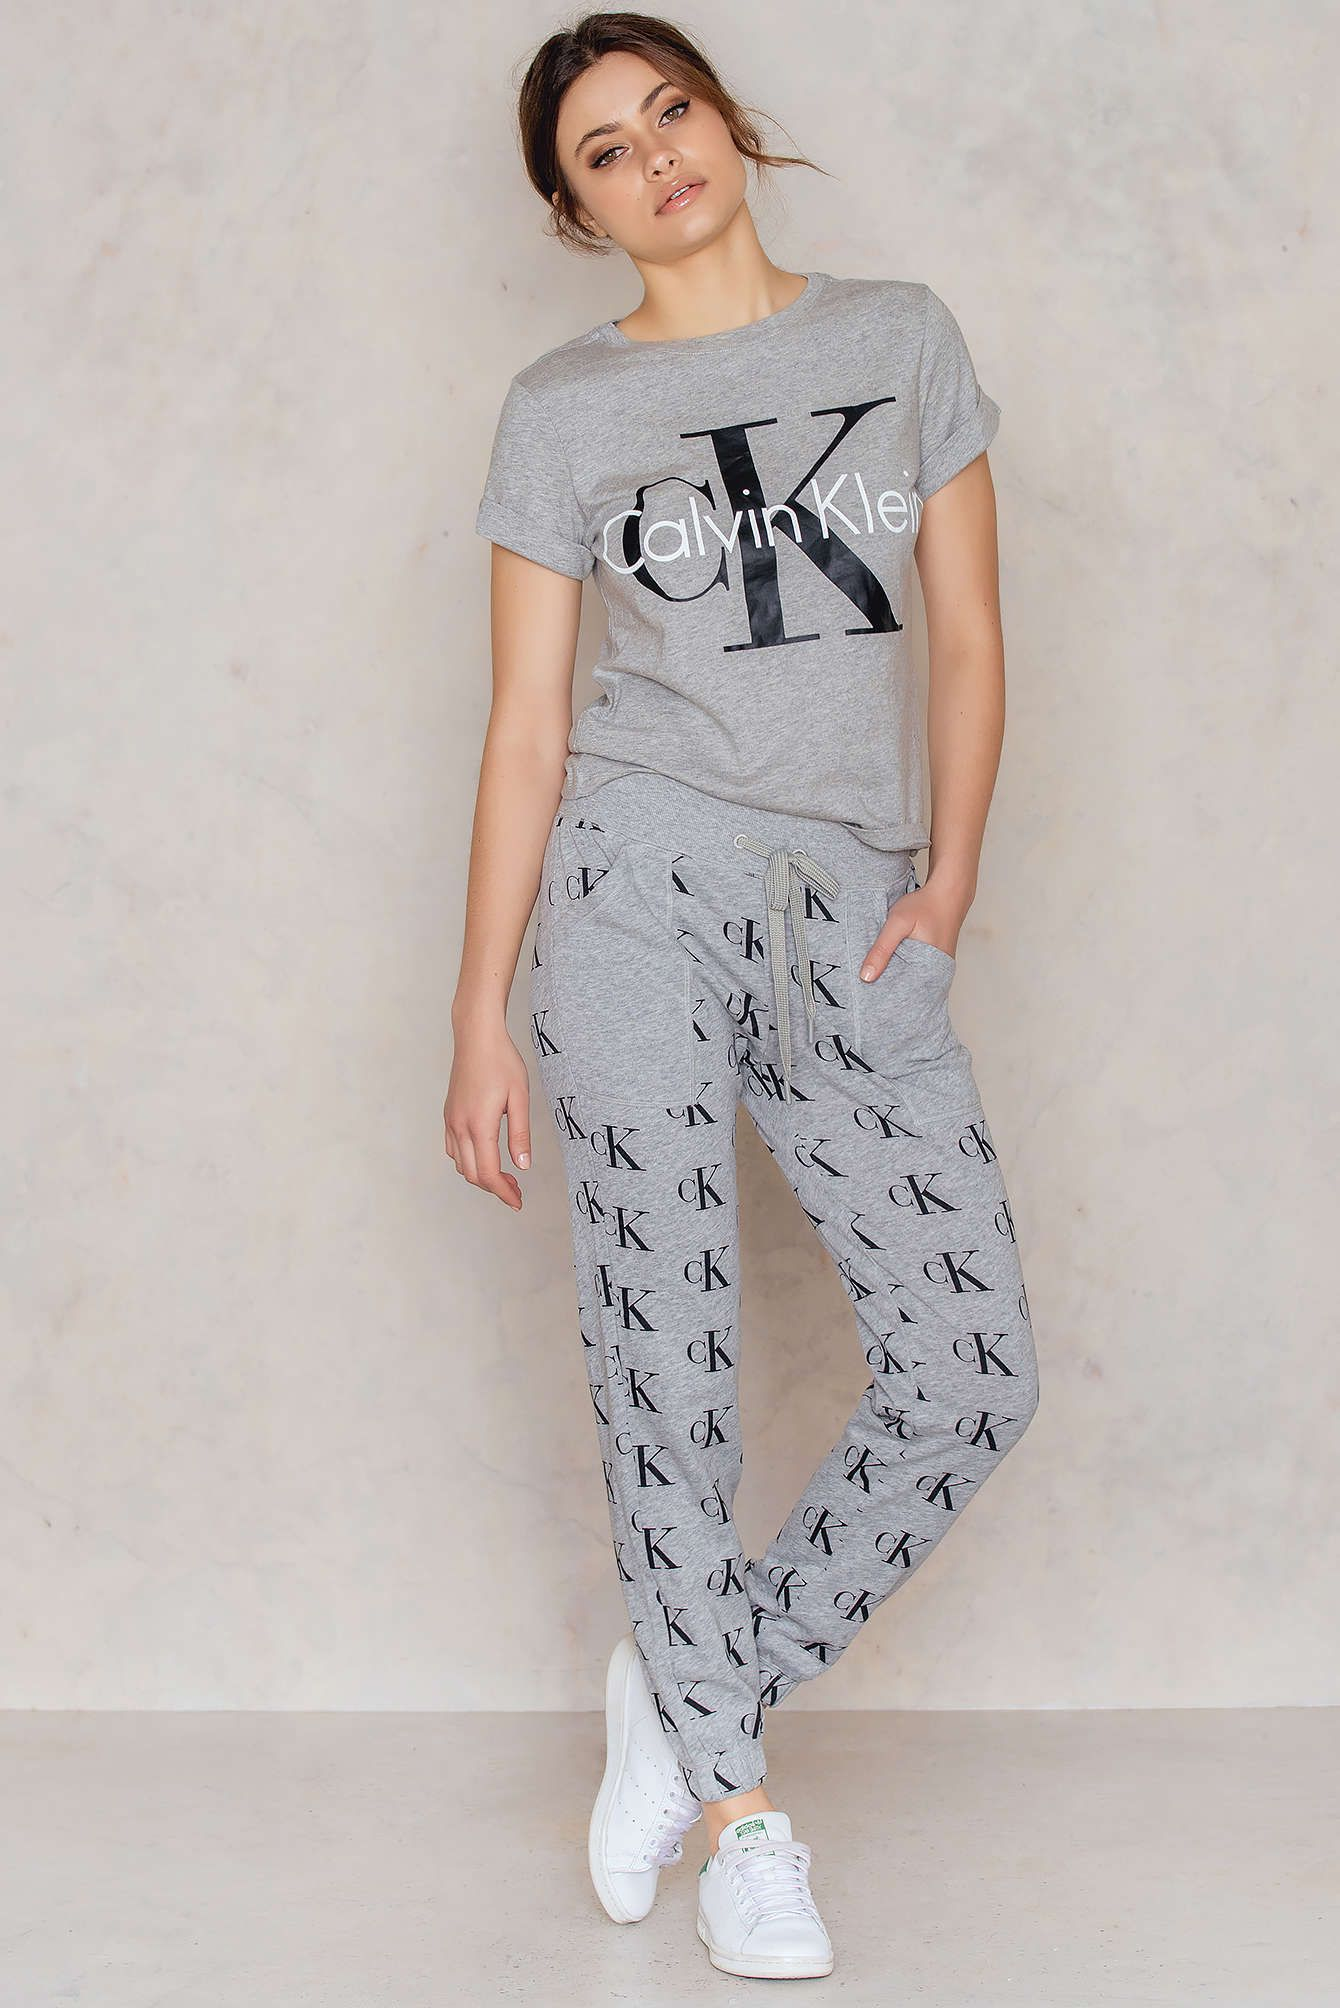 Stay chill and cool the retro pant by calvin klein comes in grey